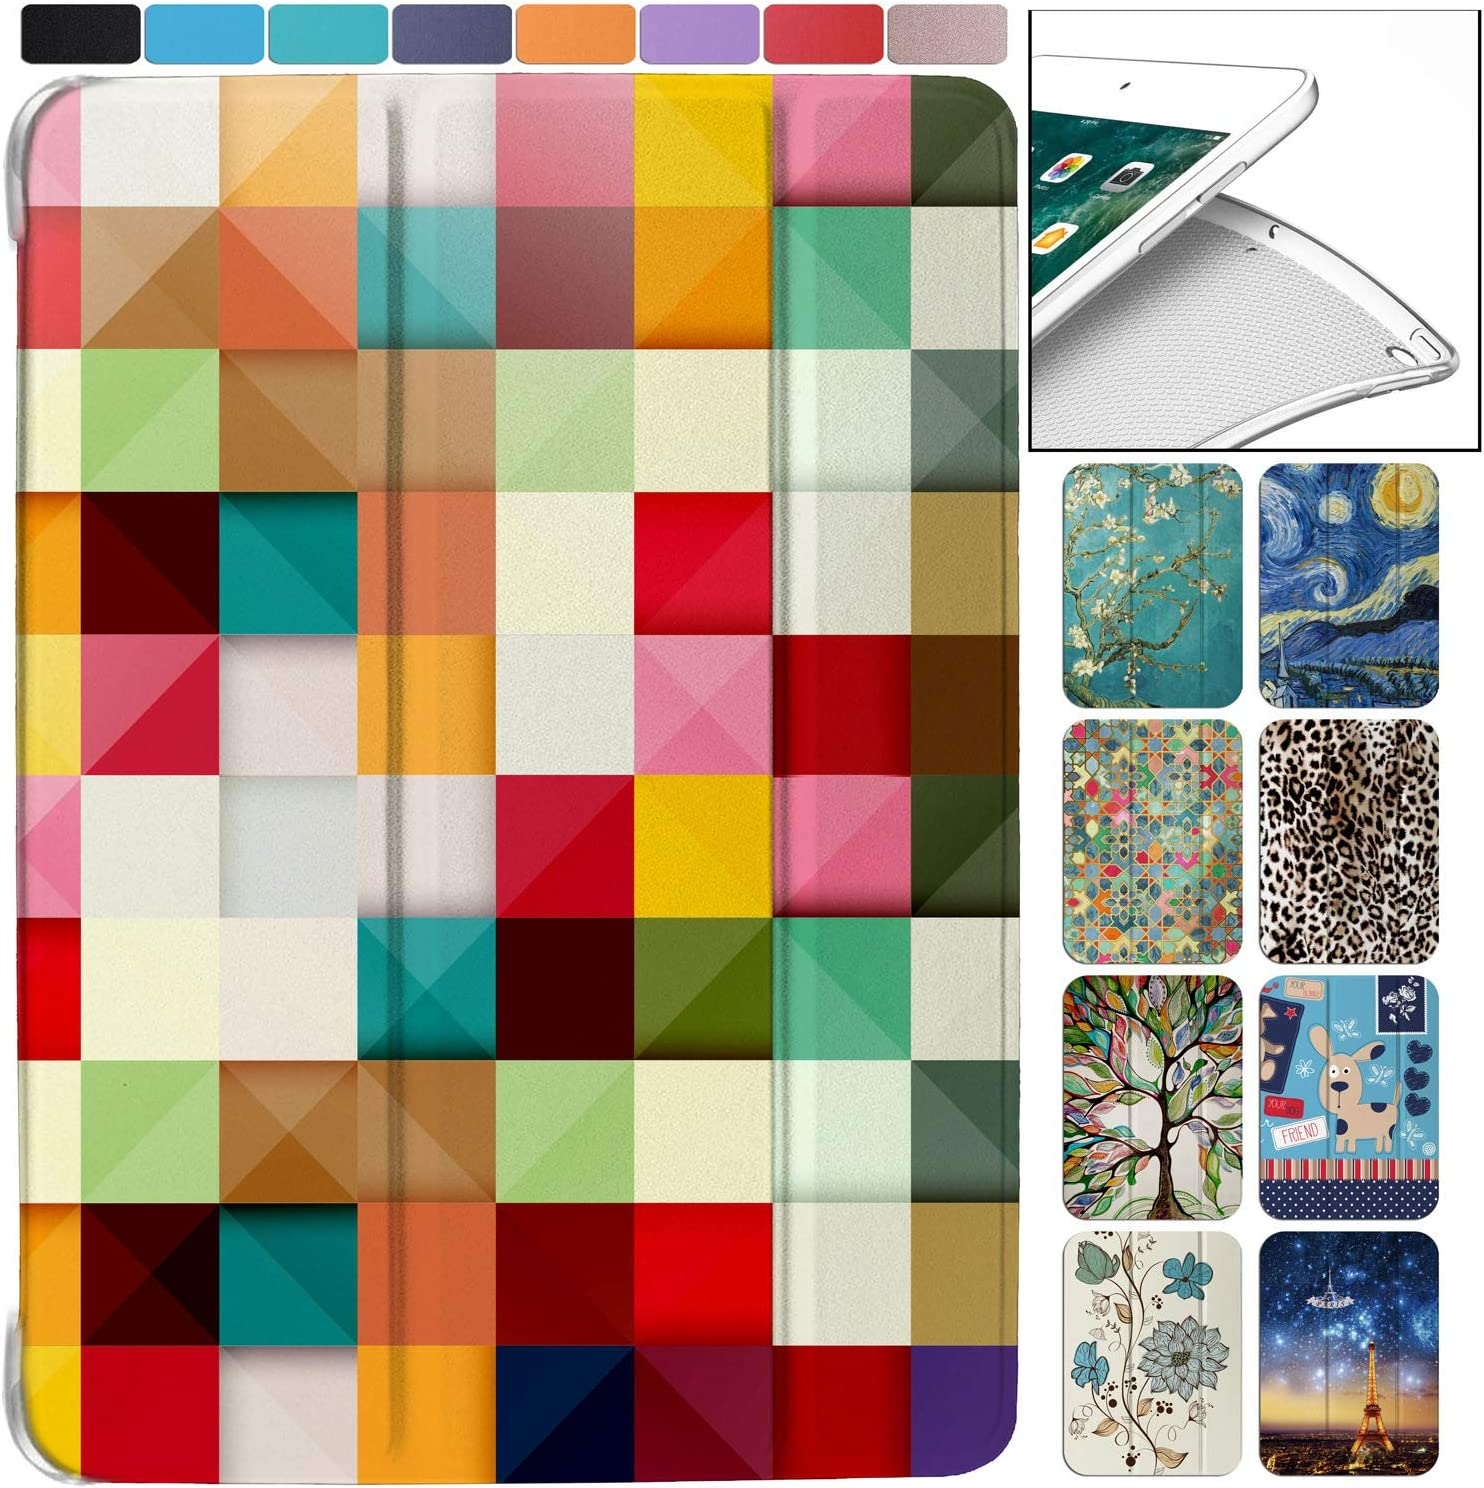 DuraSafe Cases for iPad Mini 1st Gen/Mini 2nd Gen/Mini 3rd Gen - 7.9 MGNV2LL/A MGYE2LL/A MGNR2LL/A Ultra Slim Energy Saving Printed Case with Adjustable Stand Feature and Sleek Design - Color Grid